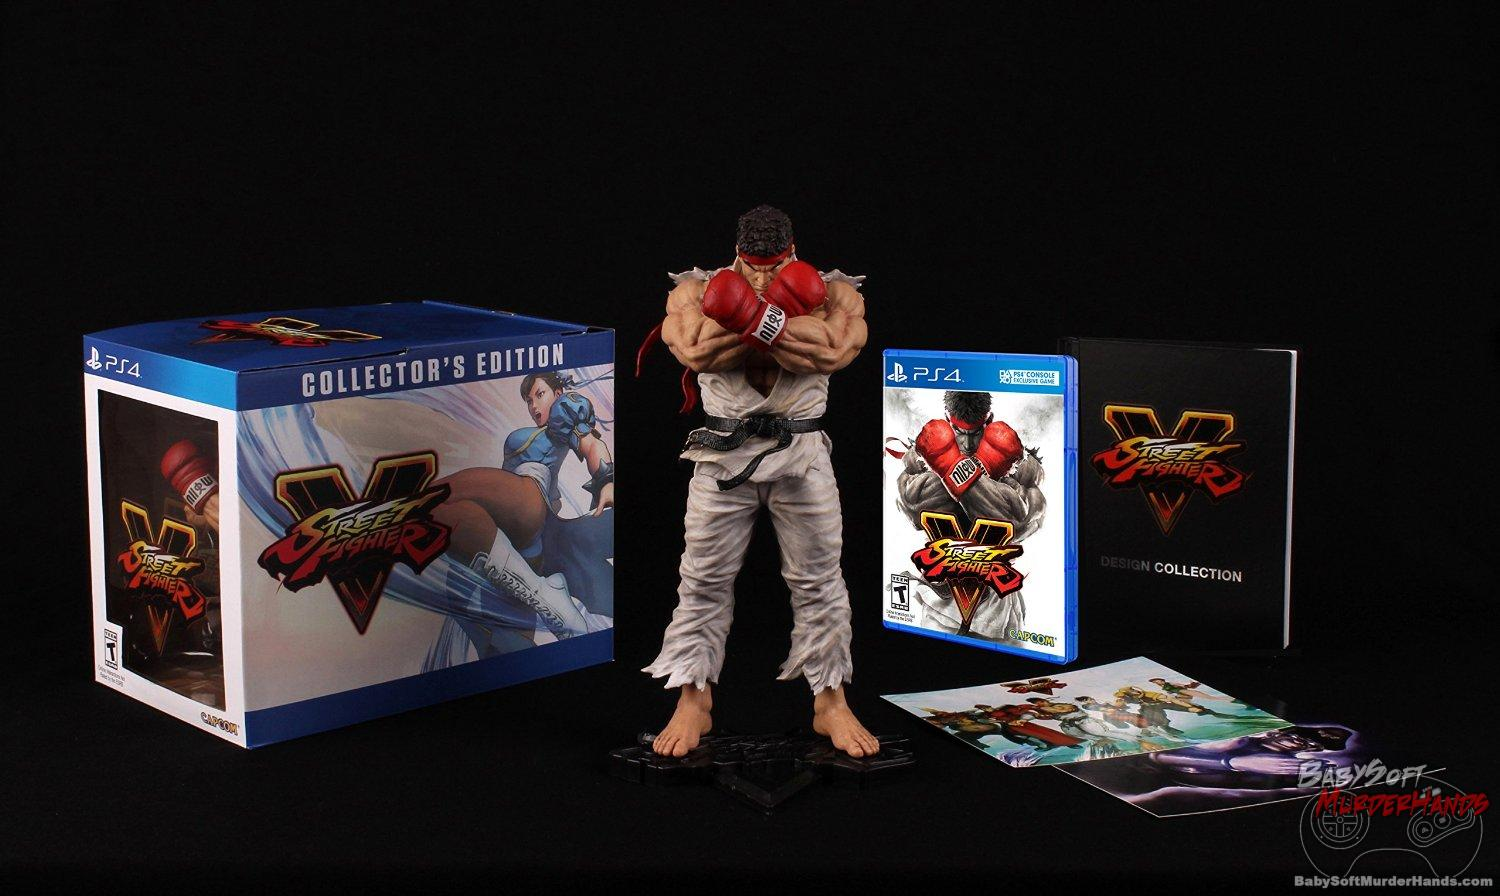 Street Fighter V - Collector's Edition - PlayStation 4